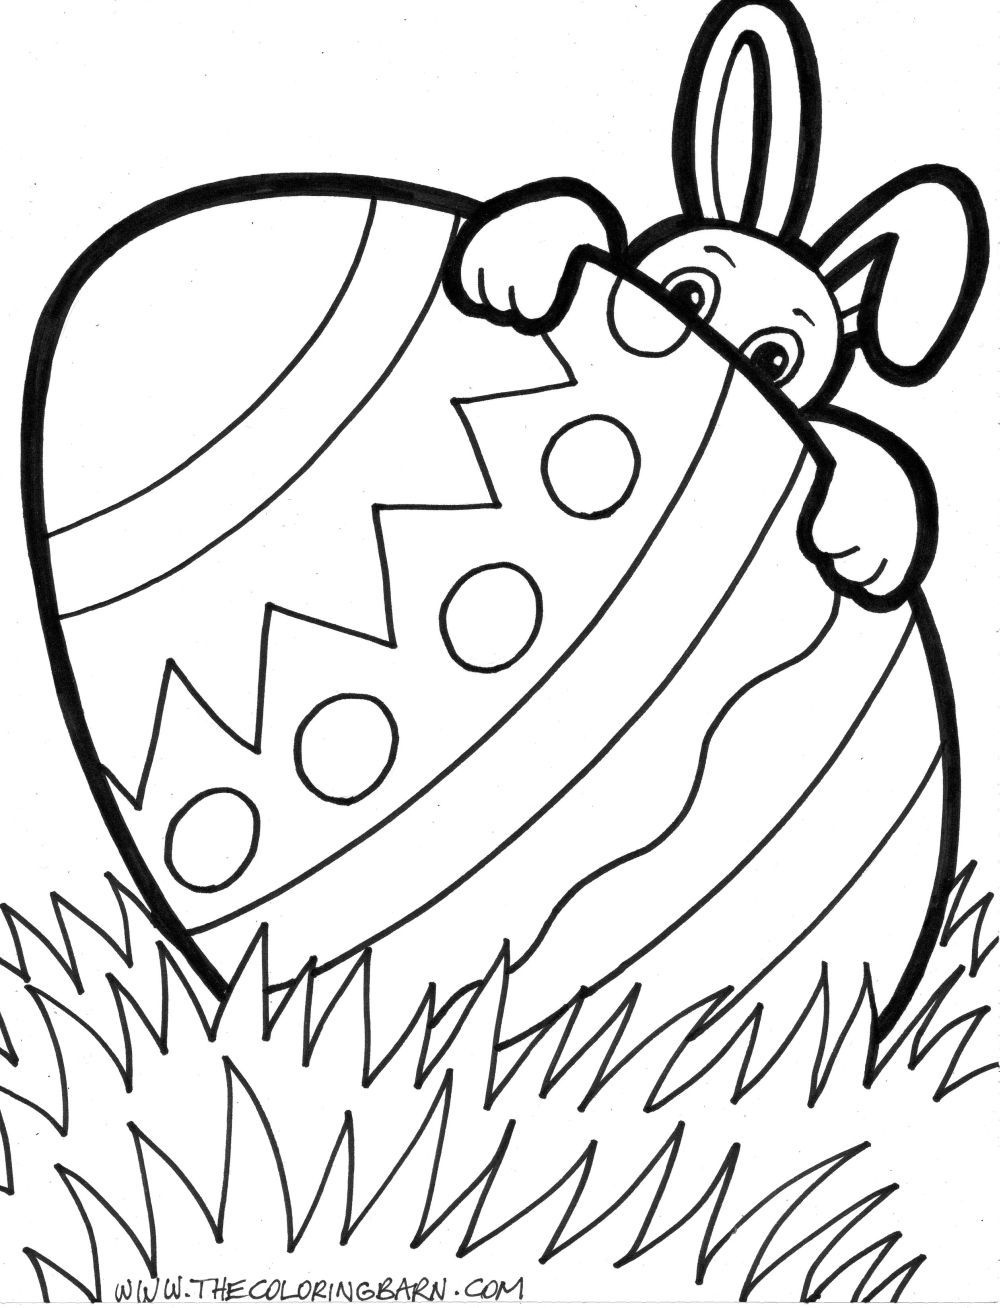 Free Printable Easter Egg Coloring Pages 04 | Easter | Easter Egg - Free Printable Easter Pages